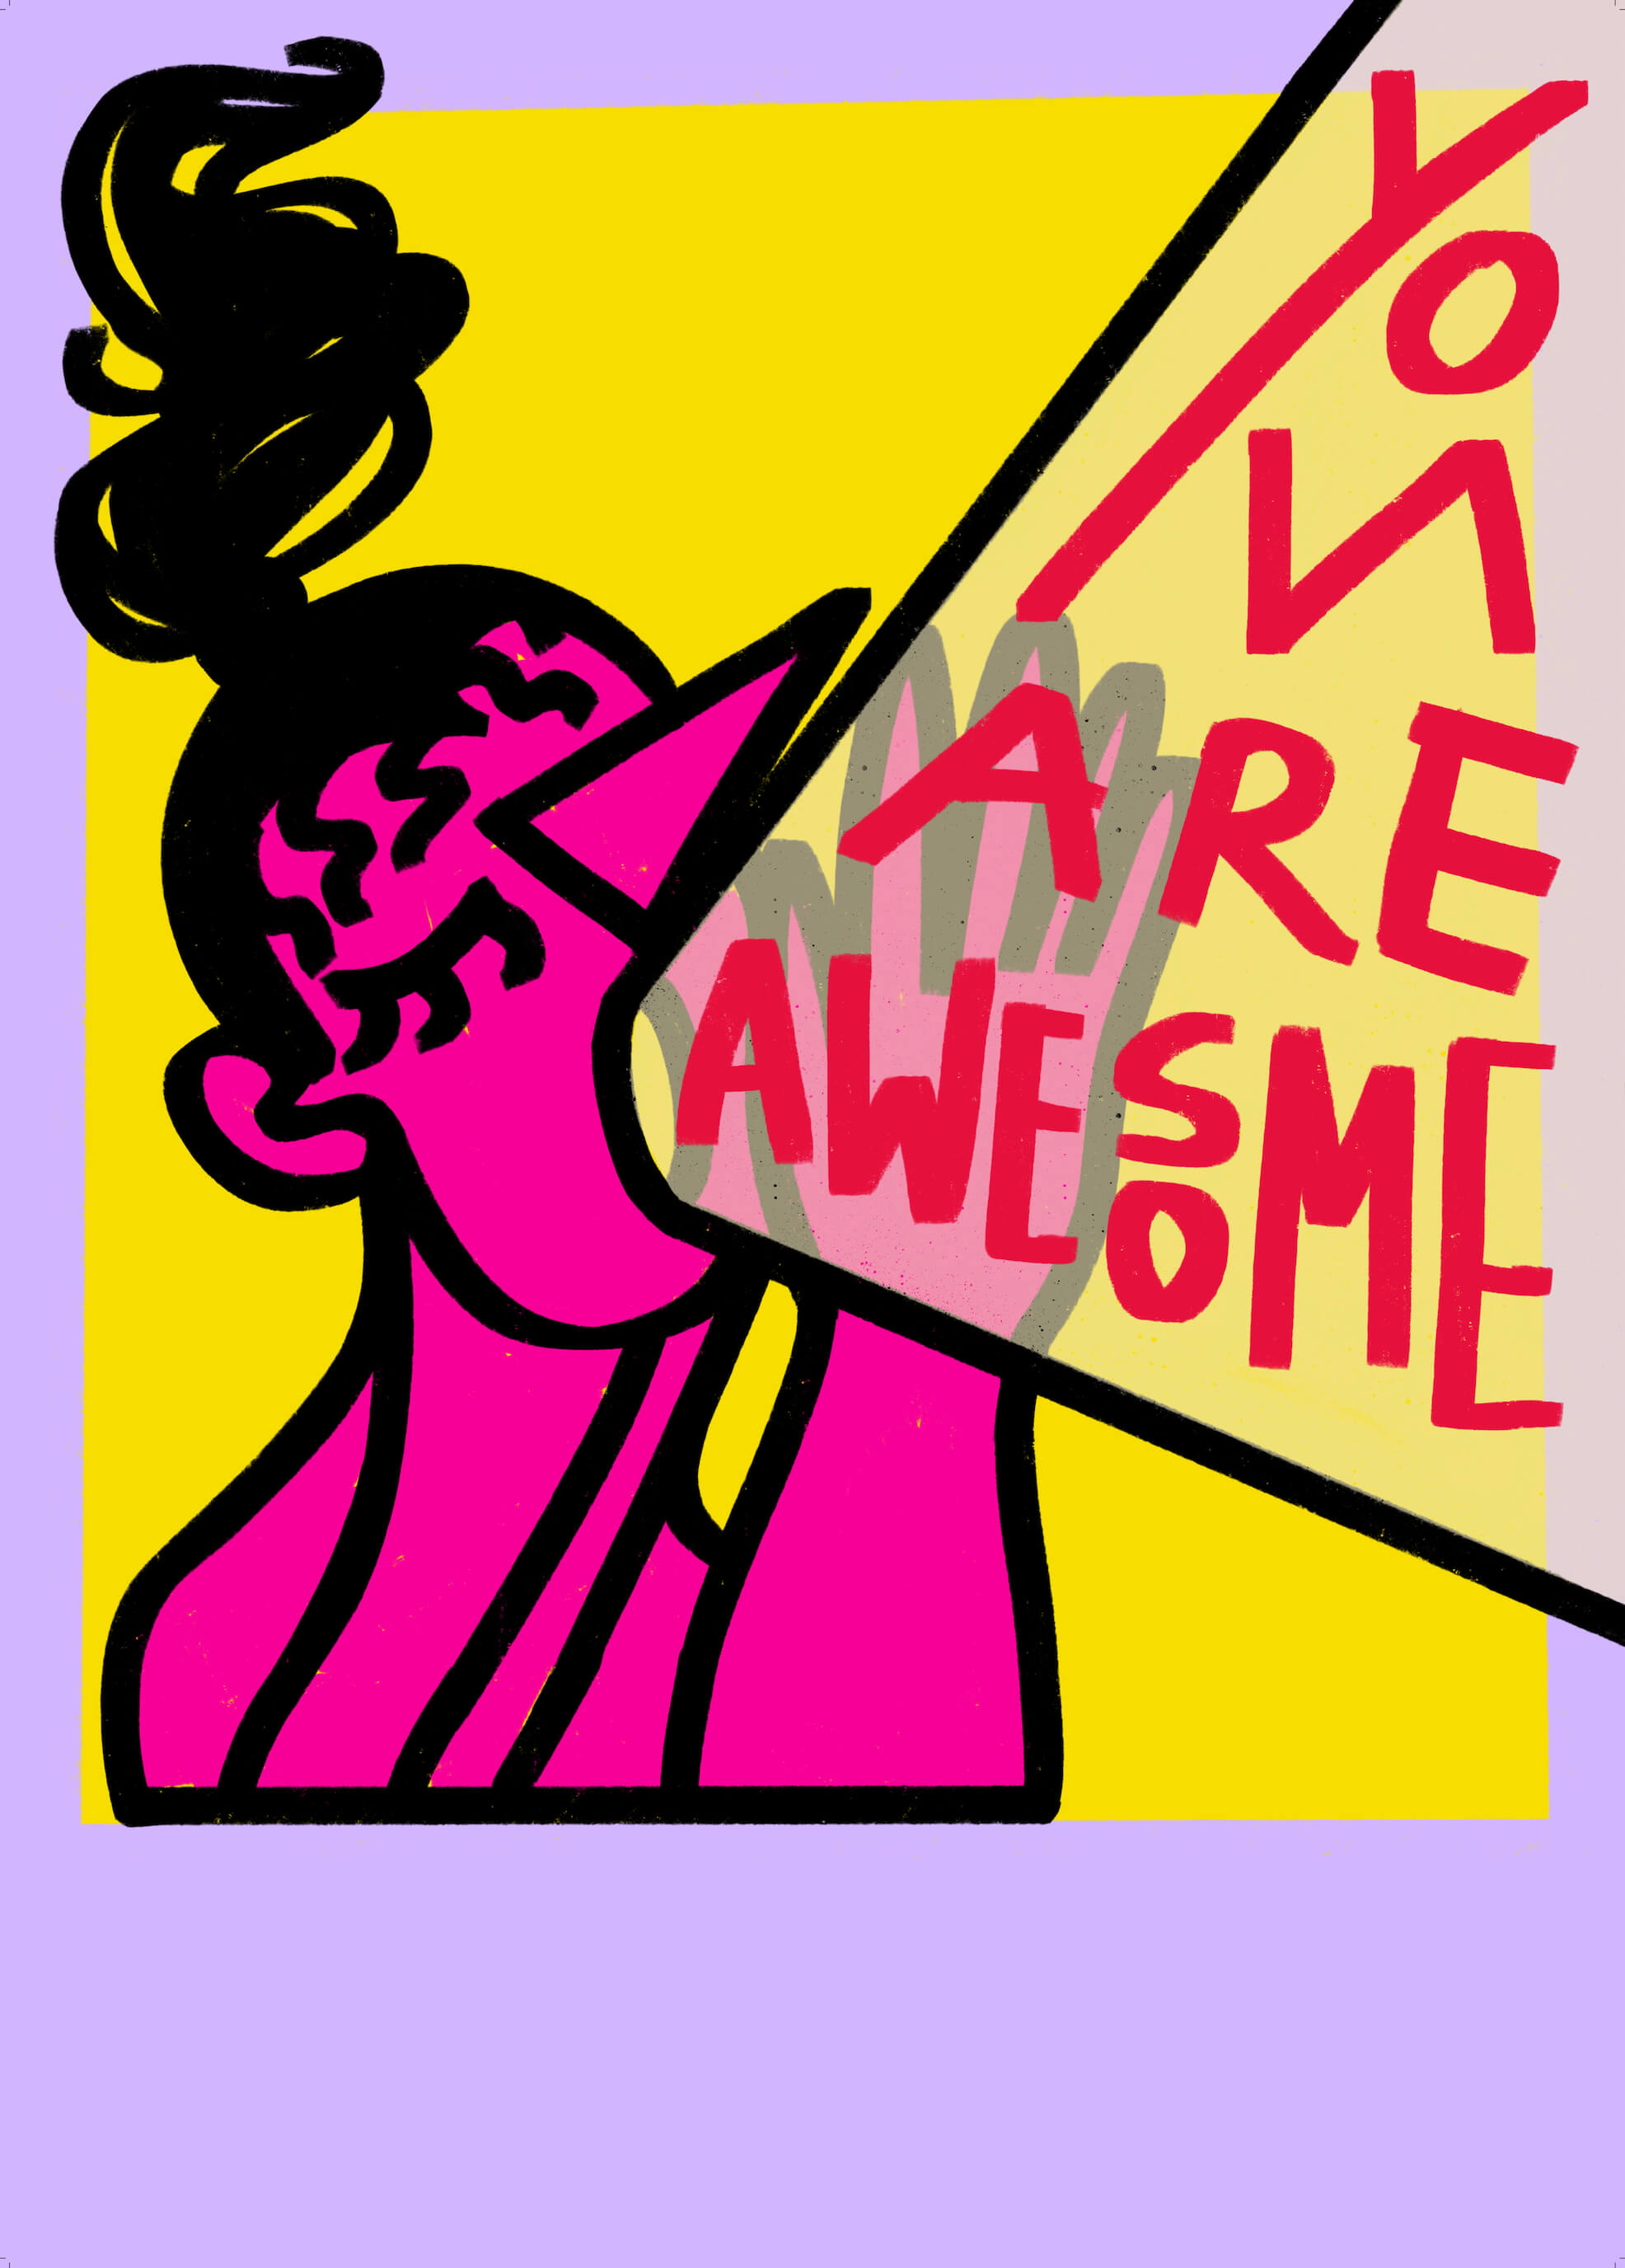 You Are Awesome (color series) main image